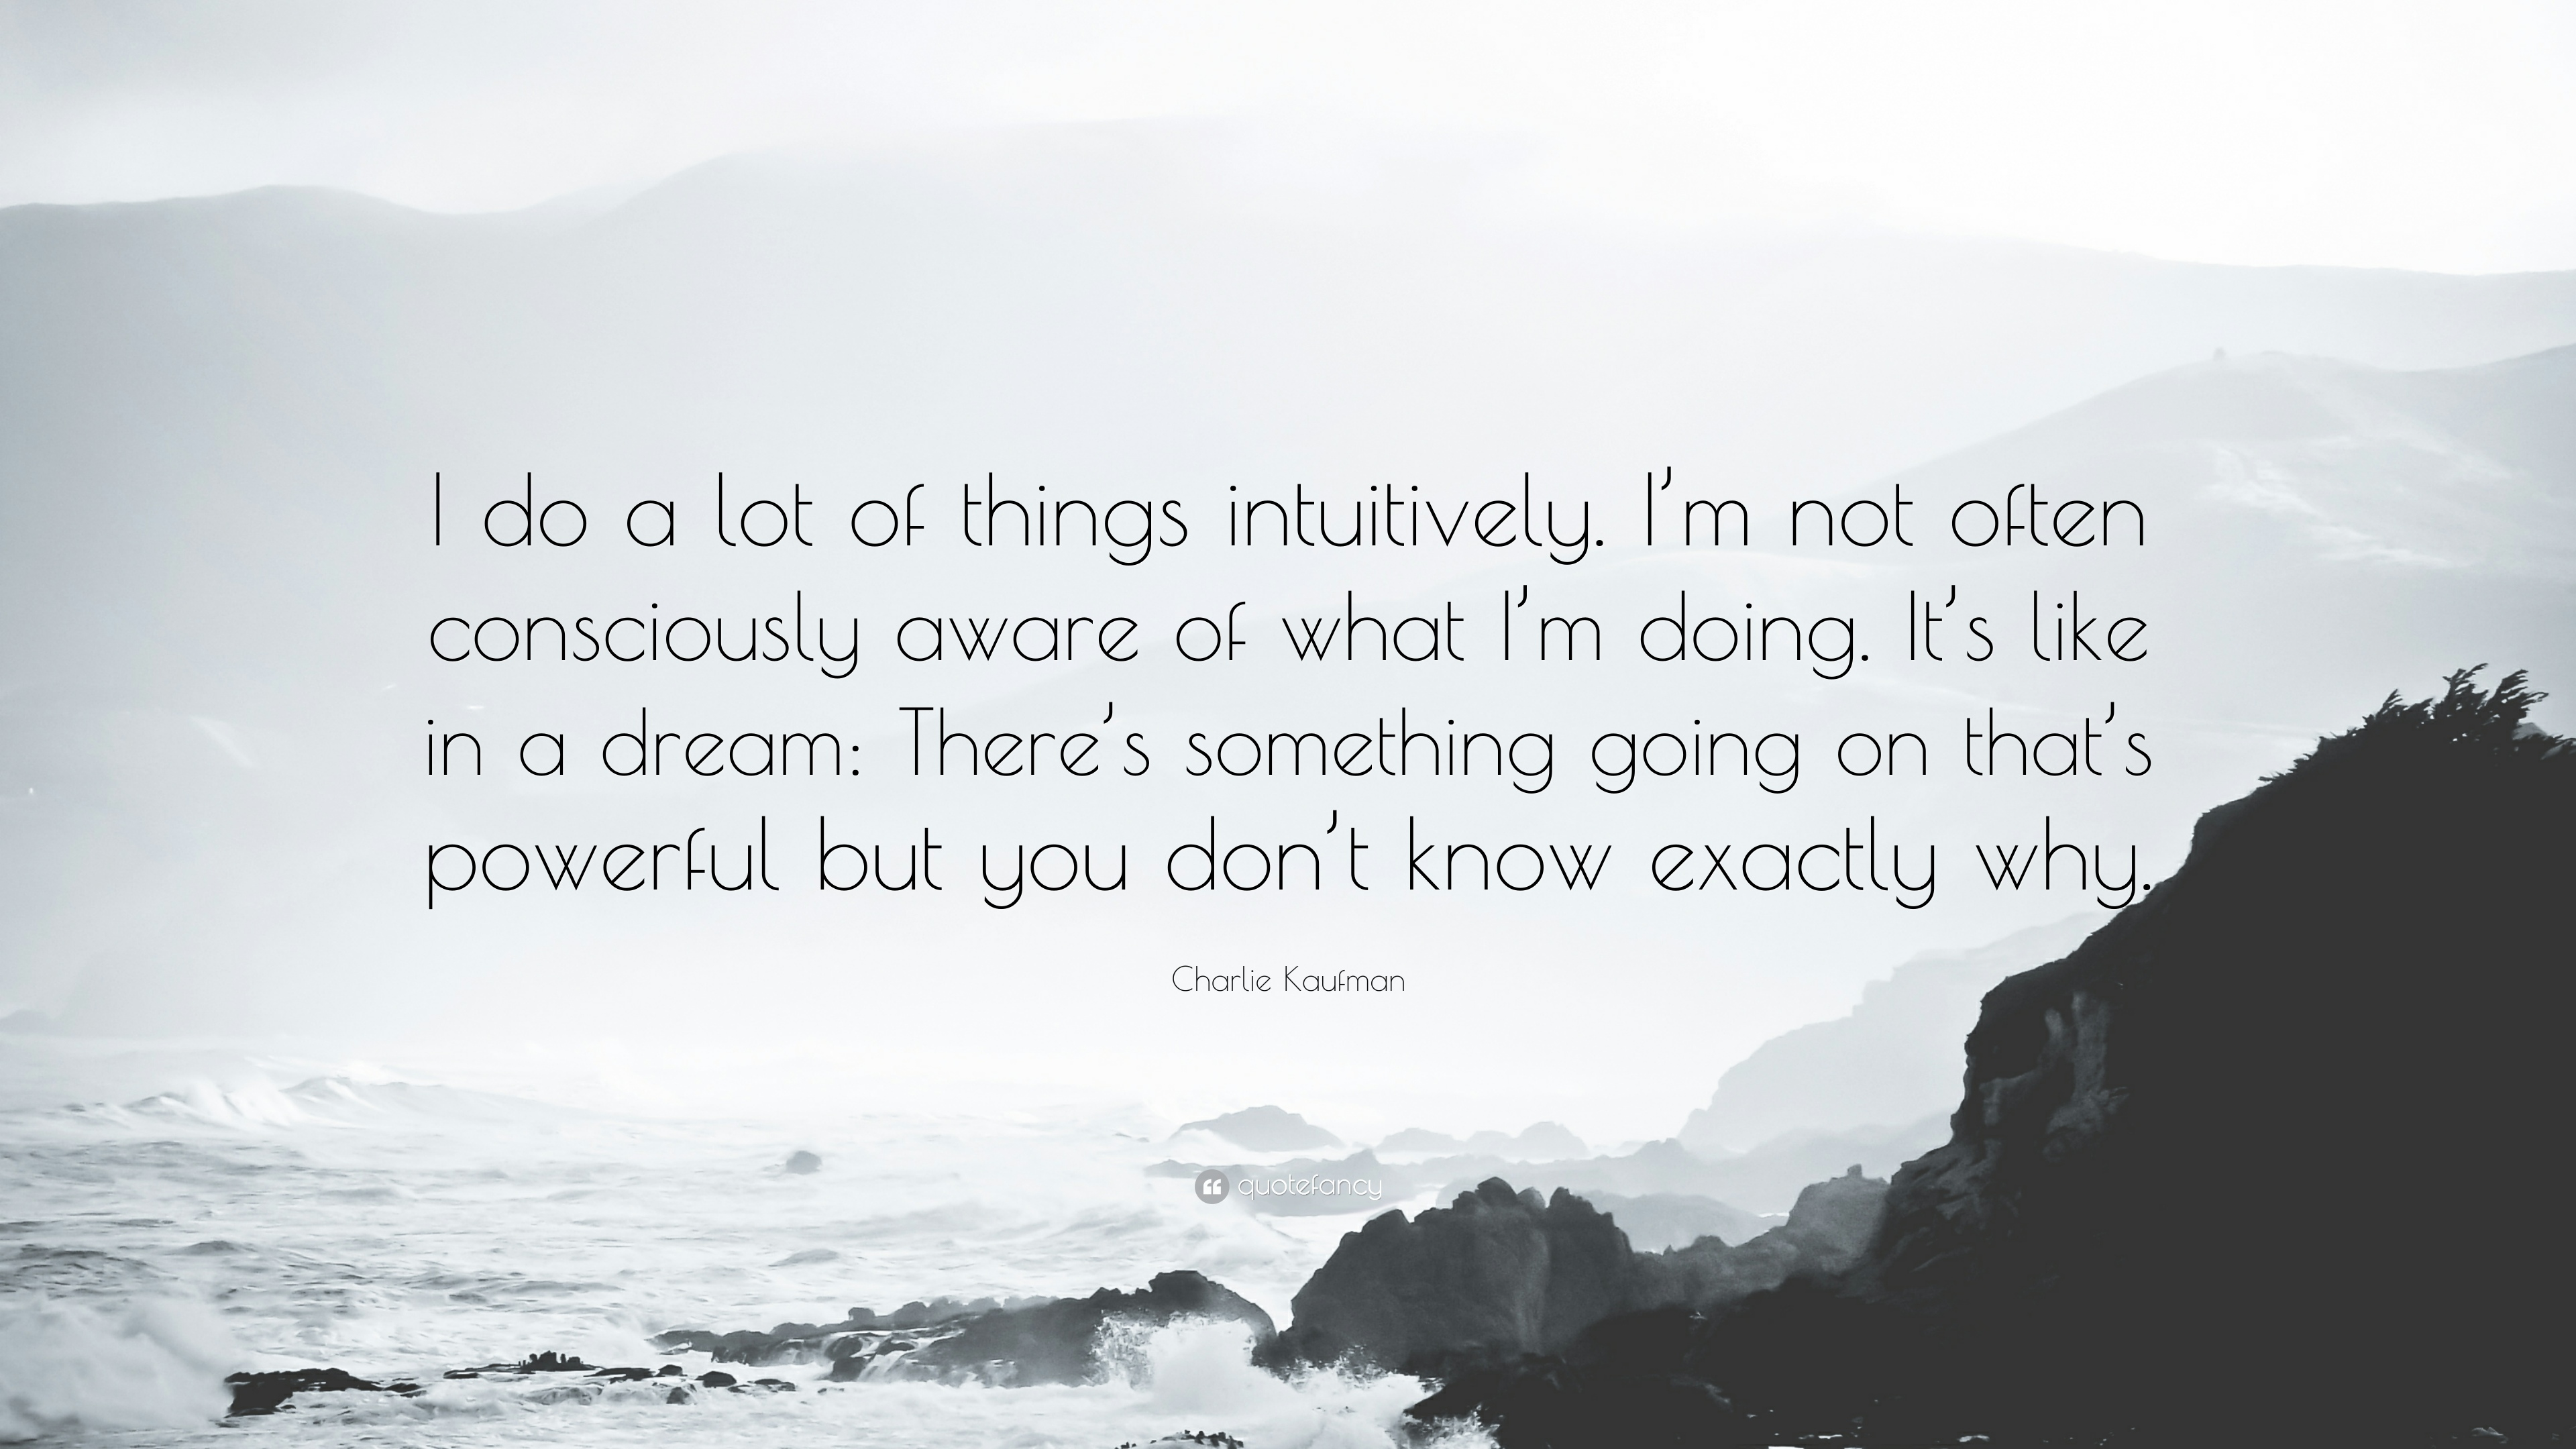 Why do things dream